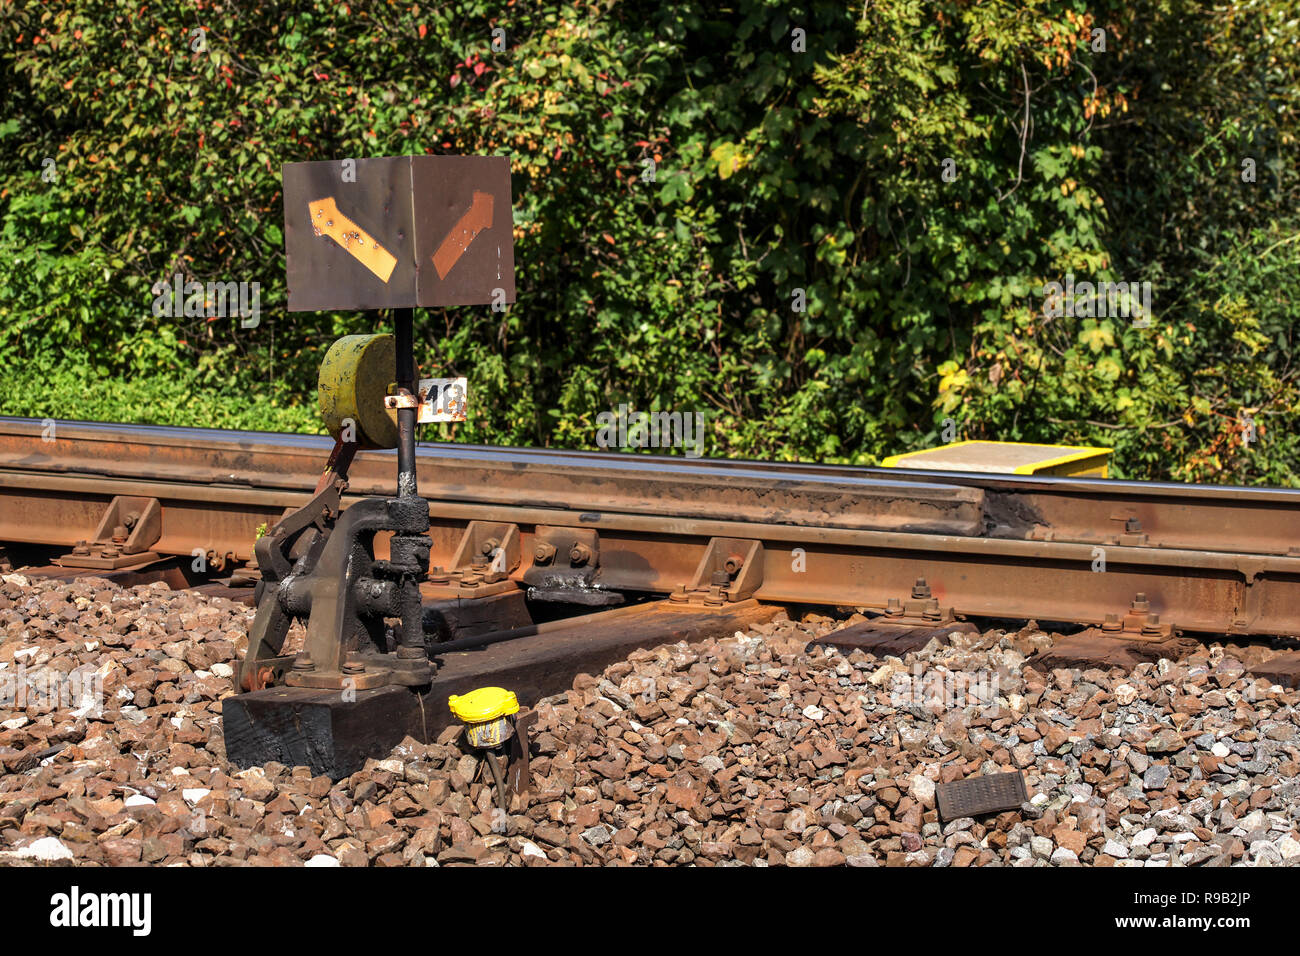 Old railway cross switch covered with black oil and dirt. Rail tracks and green bushes in background. - Stock Image